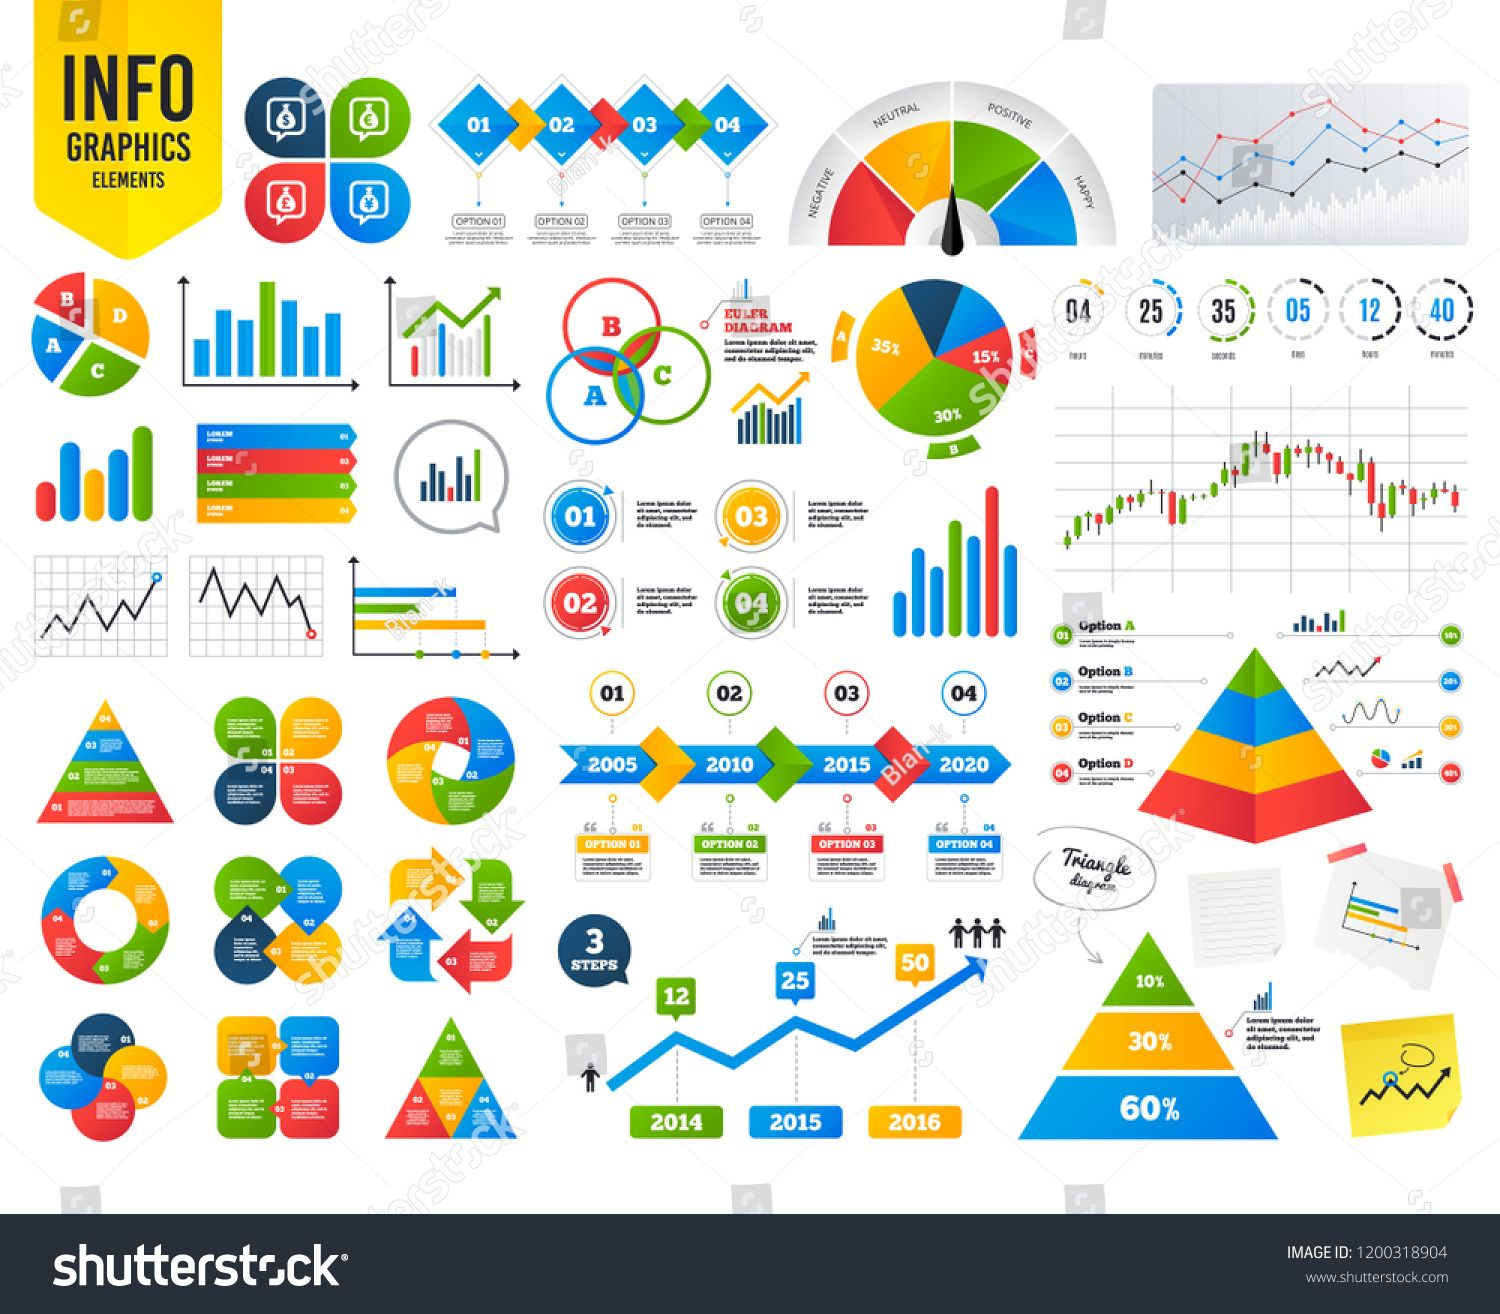 Business infographic chart. Money bag icons. Dollar, Euro